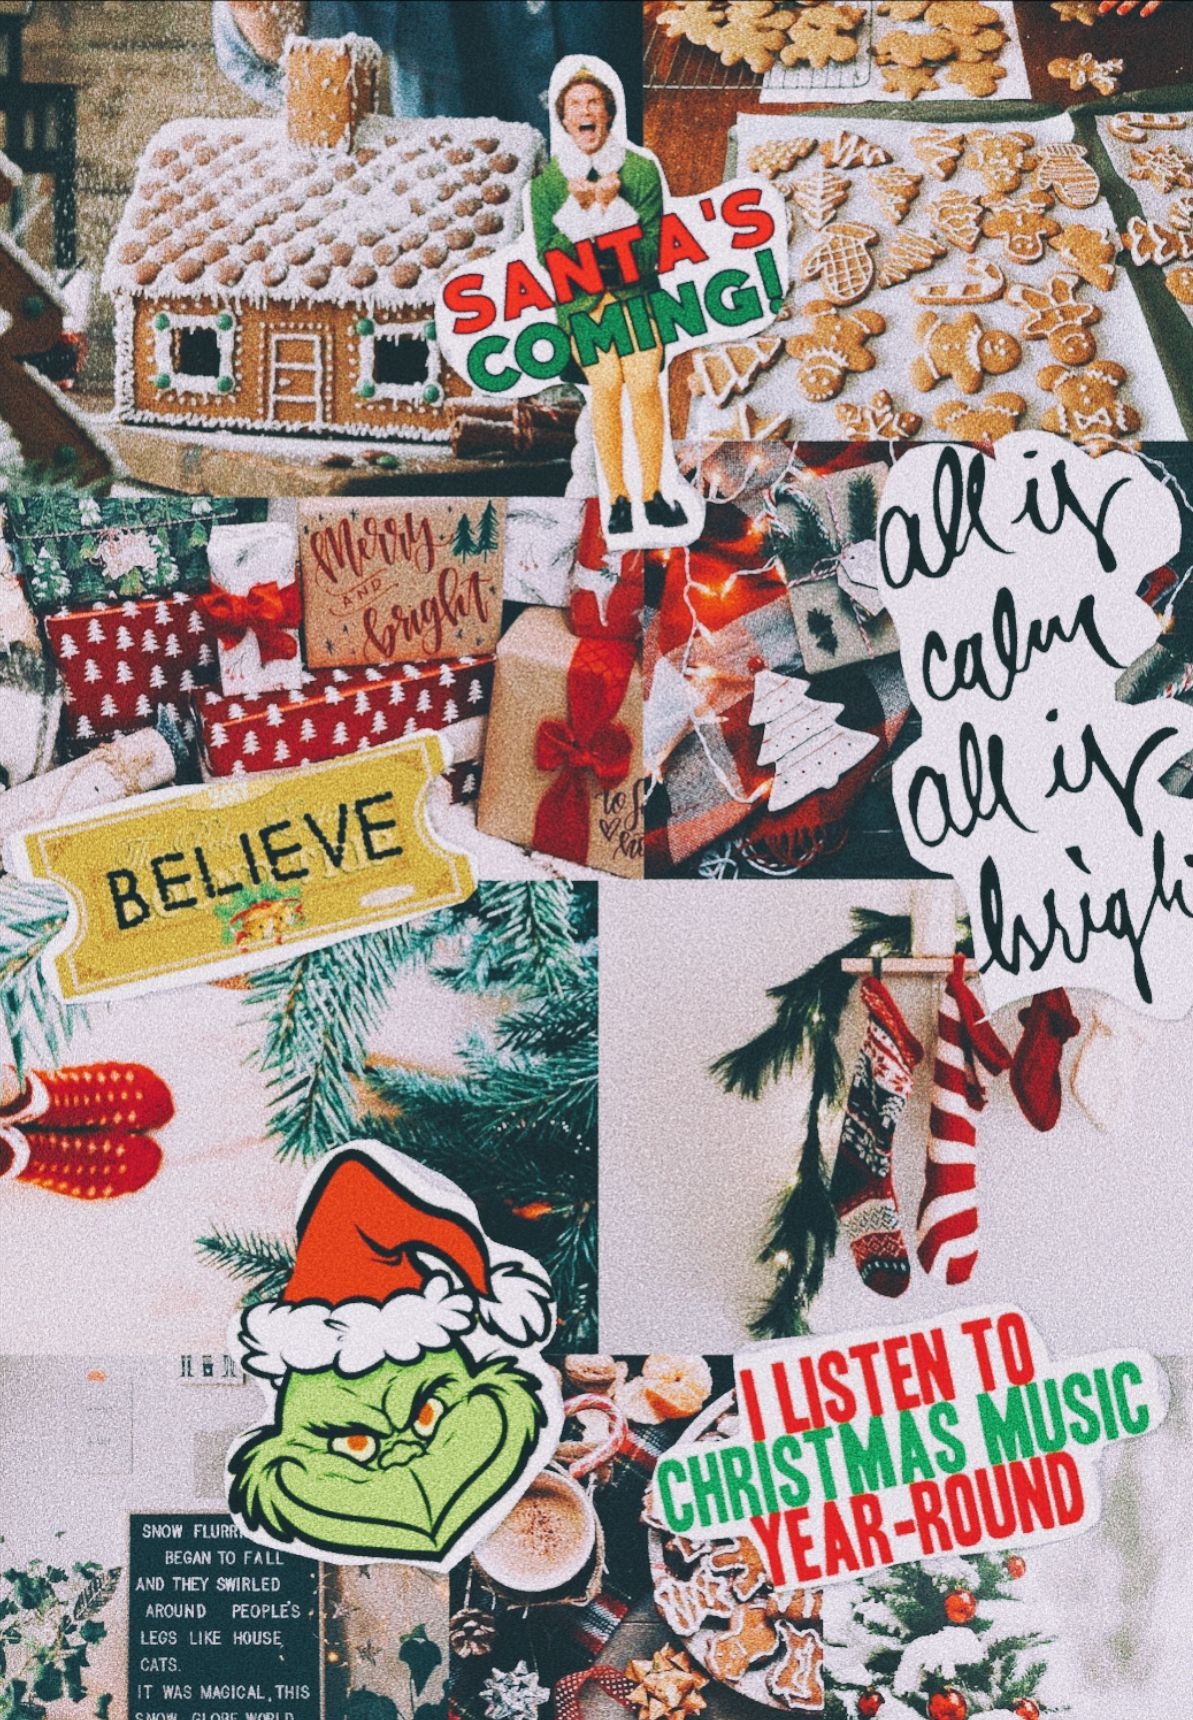 Aesthetic Christmas Wallpapers Computer : aesthetic, christmas, wallpapers, computer, Christmas, Collage, Wallpapers, Backgrounds, WallpaperAccess